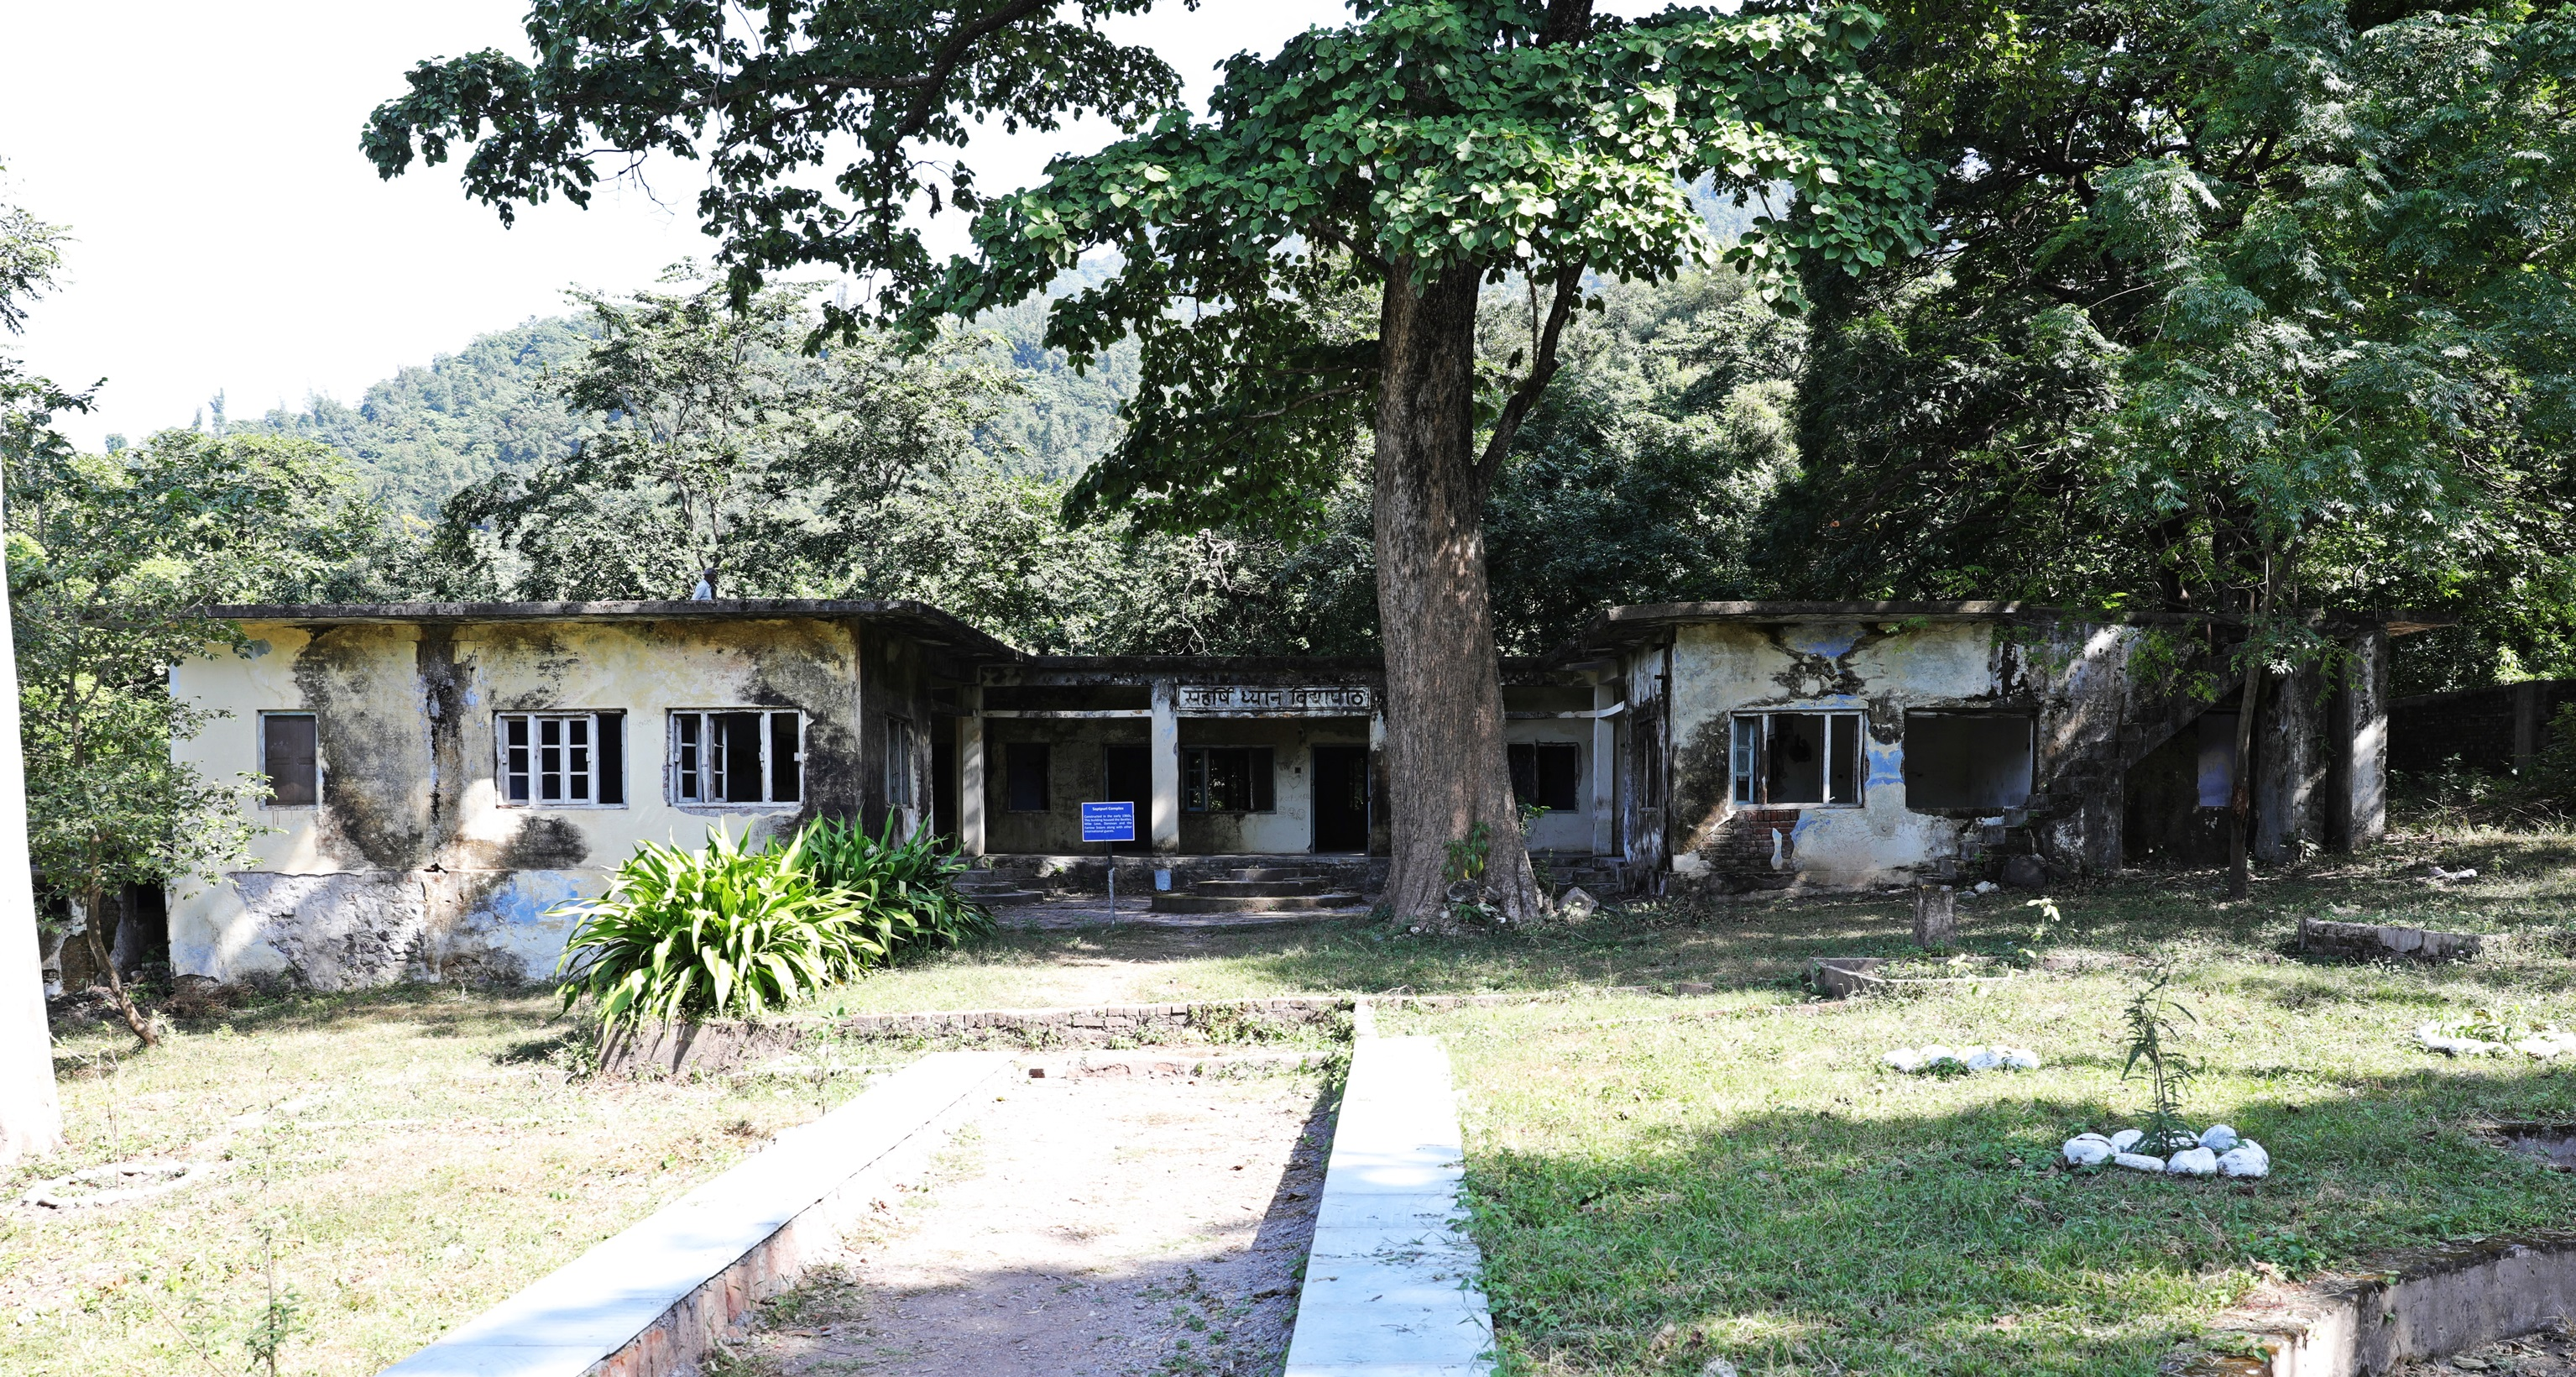 The Beatles' residence in the ashram